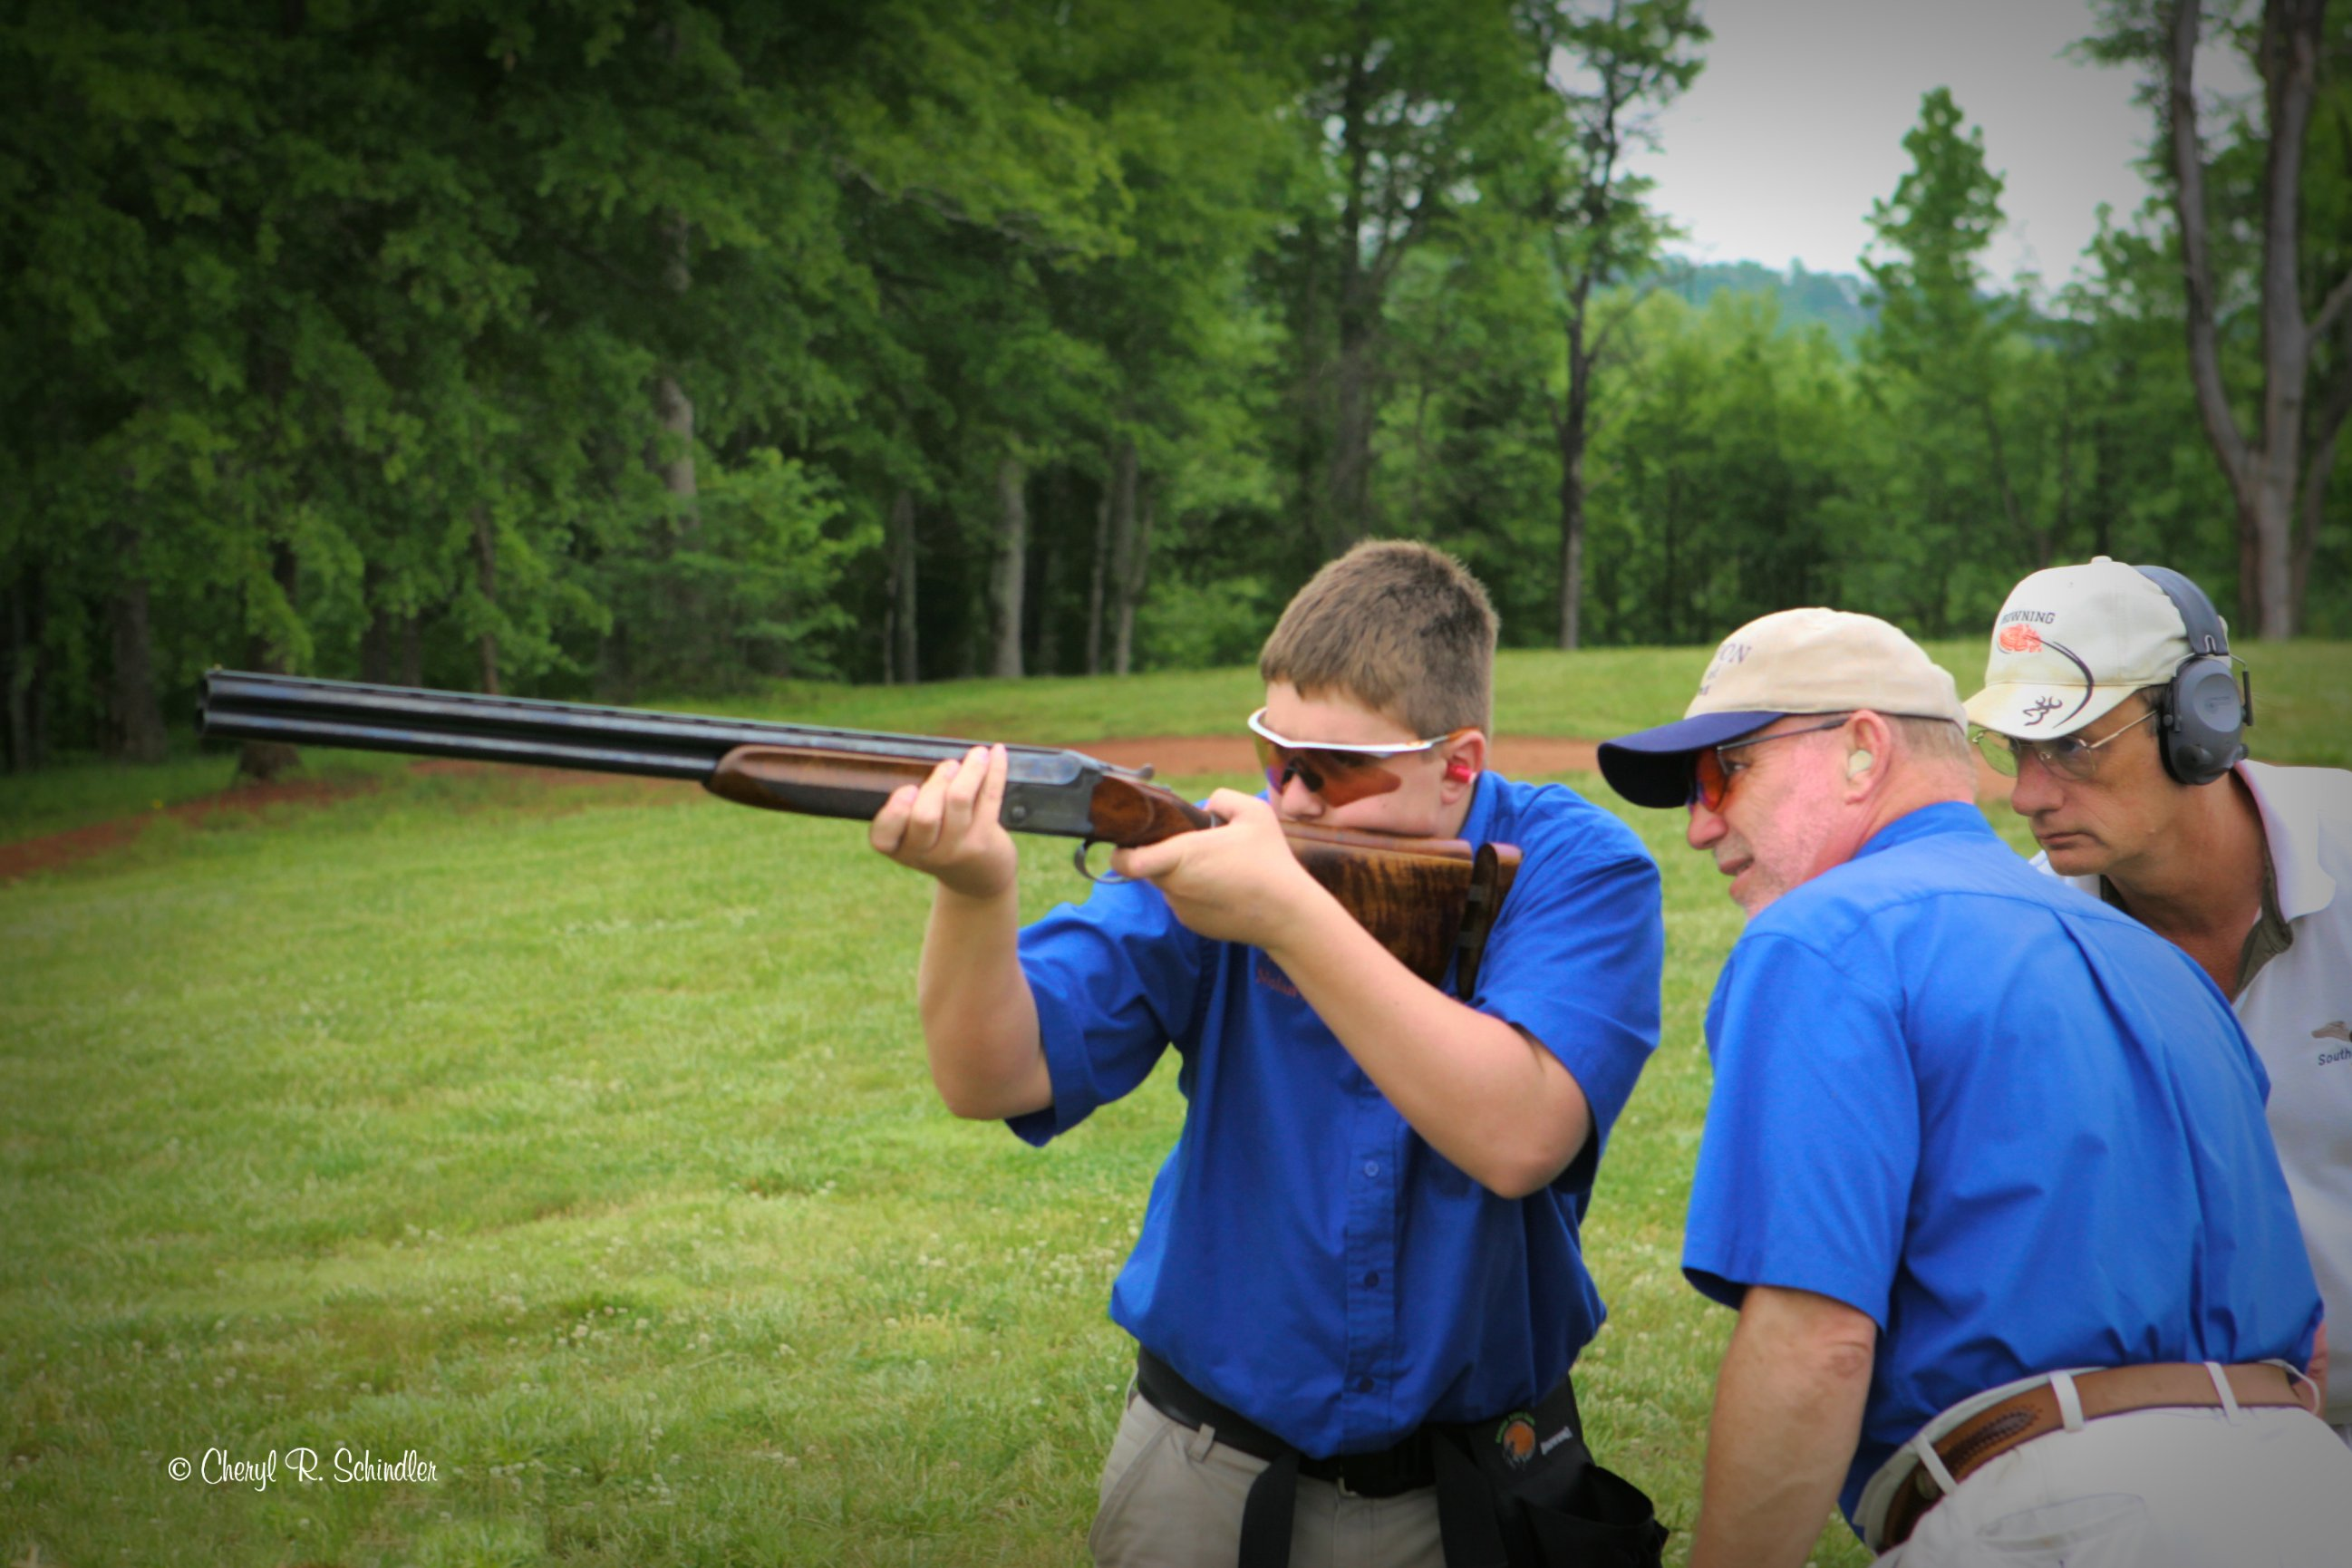 Certified Shooting Instructors from The Paragon School